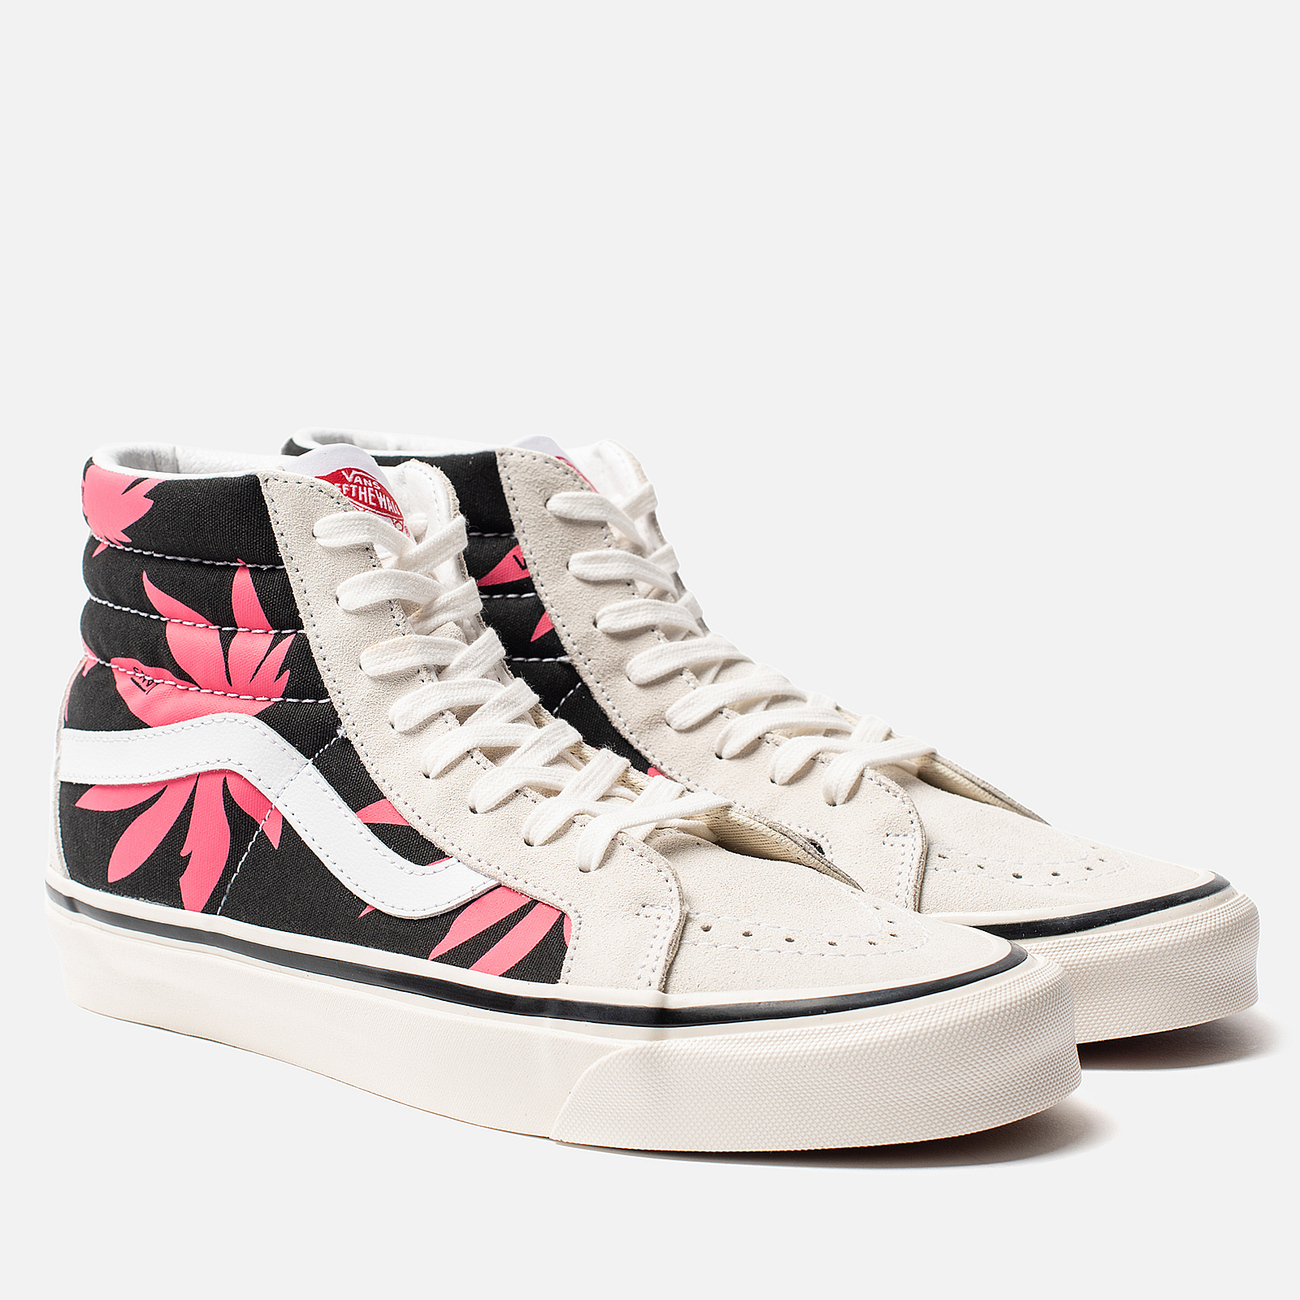 Мужские кеды Vans SK8-Hi 38 DX Anaheim Factory OG White/OG Black/Summer Leaf